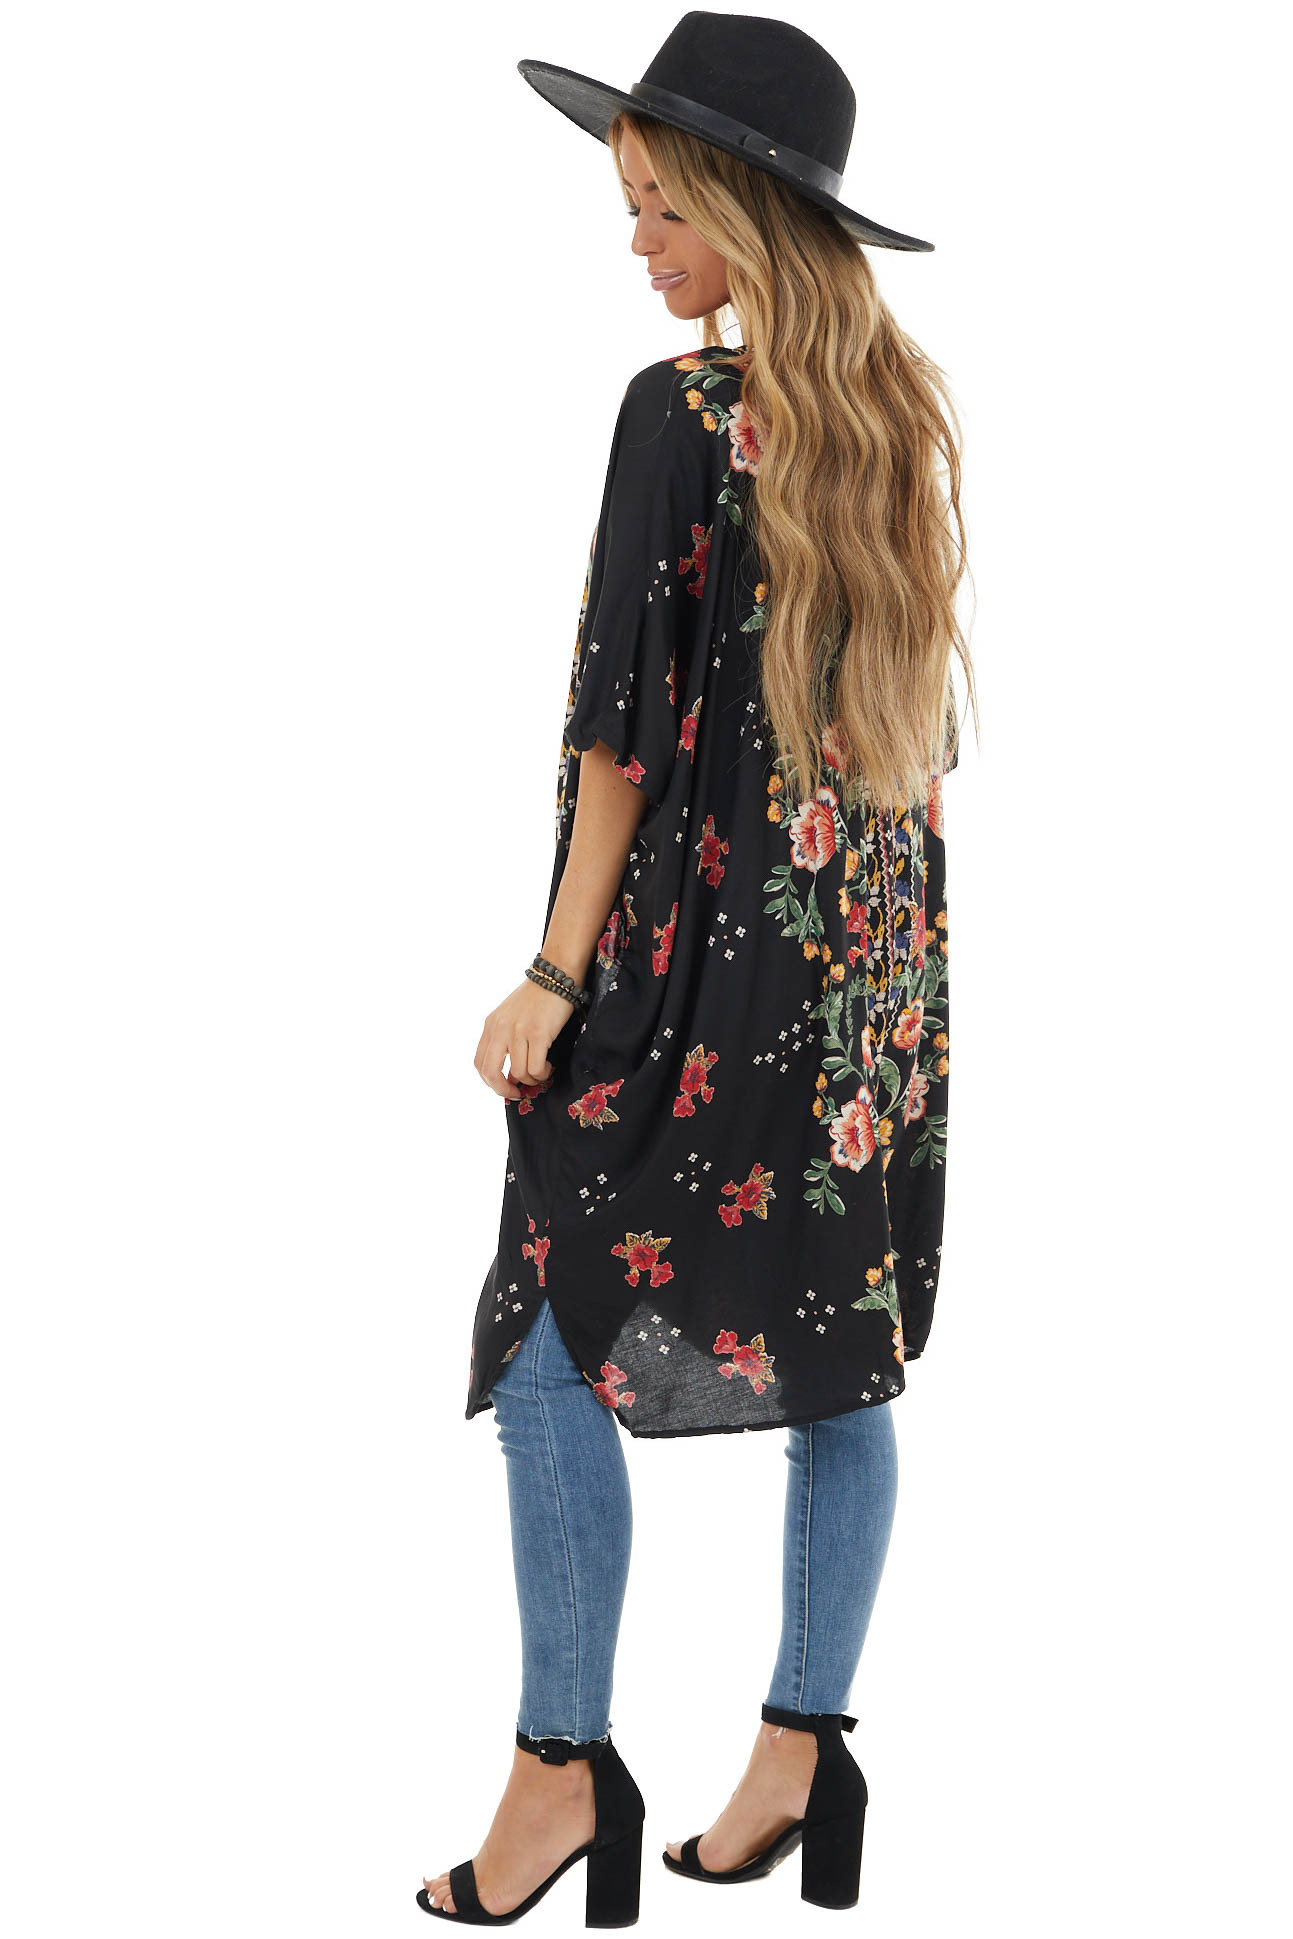 Black Loose Floral Print Kimono with Short Sleeves